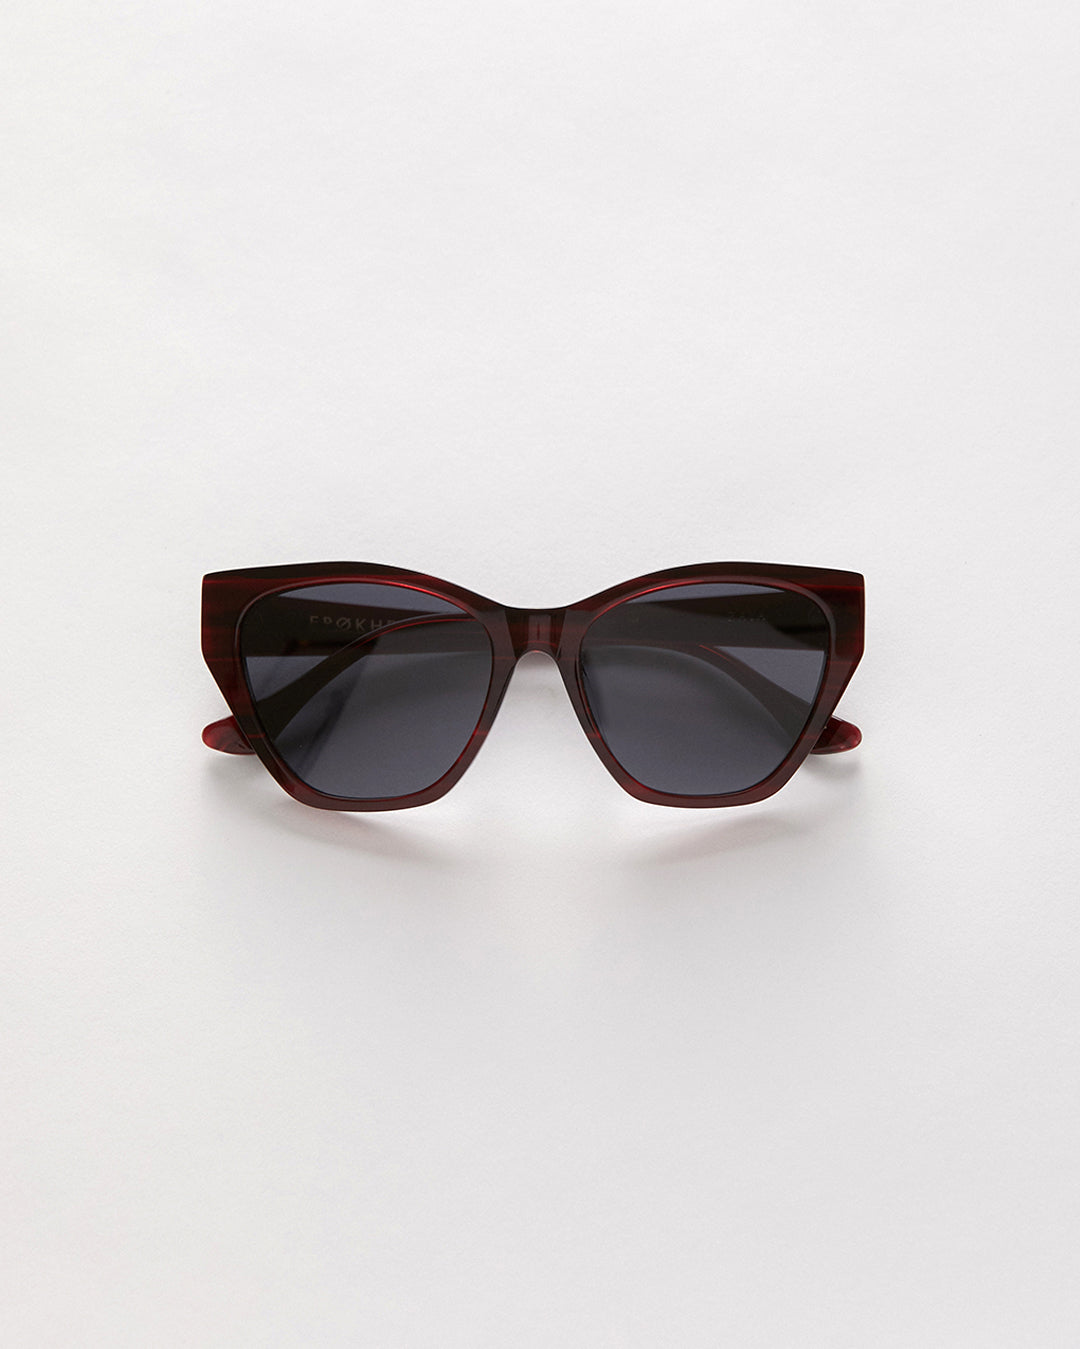 Zaya - Rosewood Polished / Black